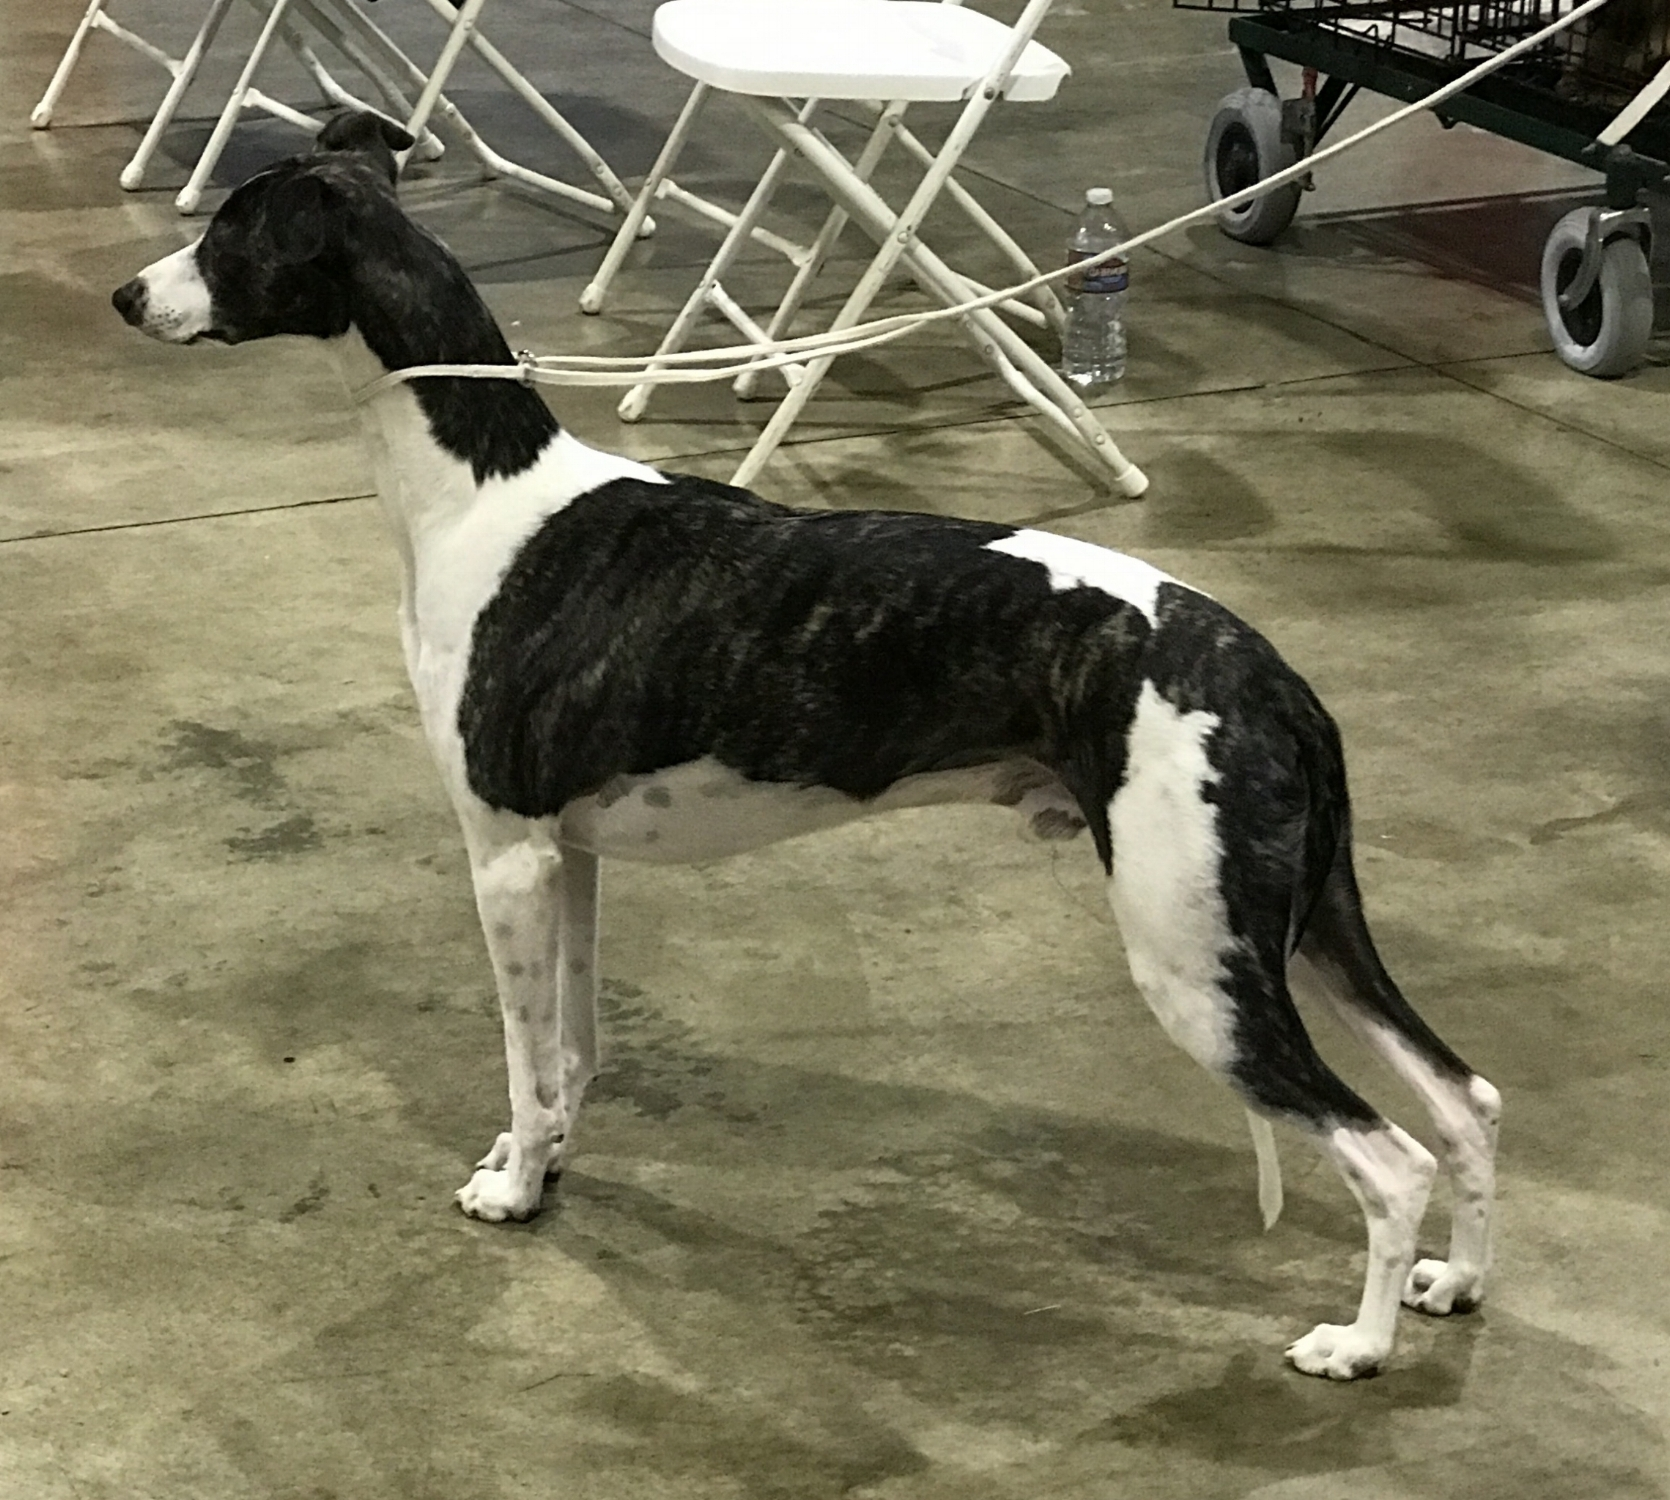 UK & Am. Ch. Palmik Strike It Right, JW  (Lewis), b. 2014, by UK Ch. Cobyco Change Places x Palmik Magic Trick, JW (by UK, Irish & Aust.Ch. Collooney Move On Over x UK Ch. Palmik Magical Whispers, JW)  Bred by Michael Howgate & Yvonne Hull, UK  Owned by Bohem